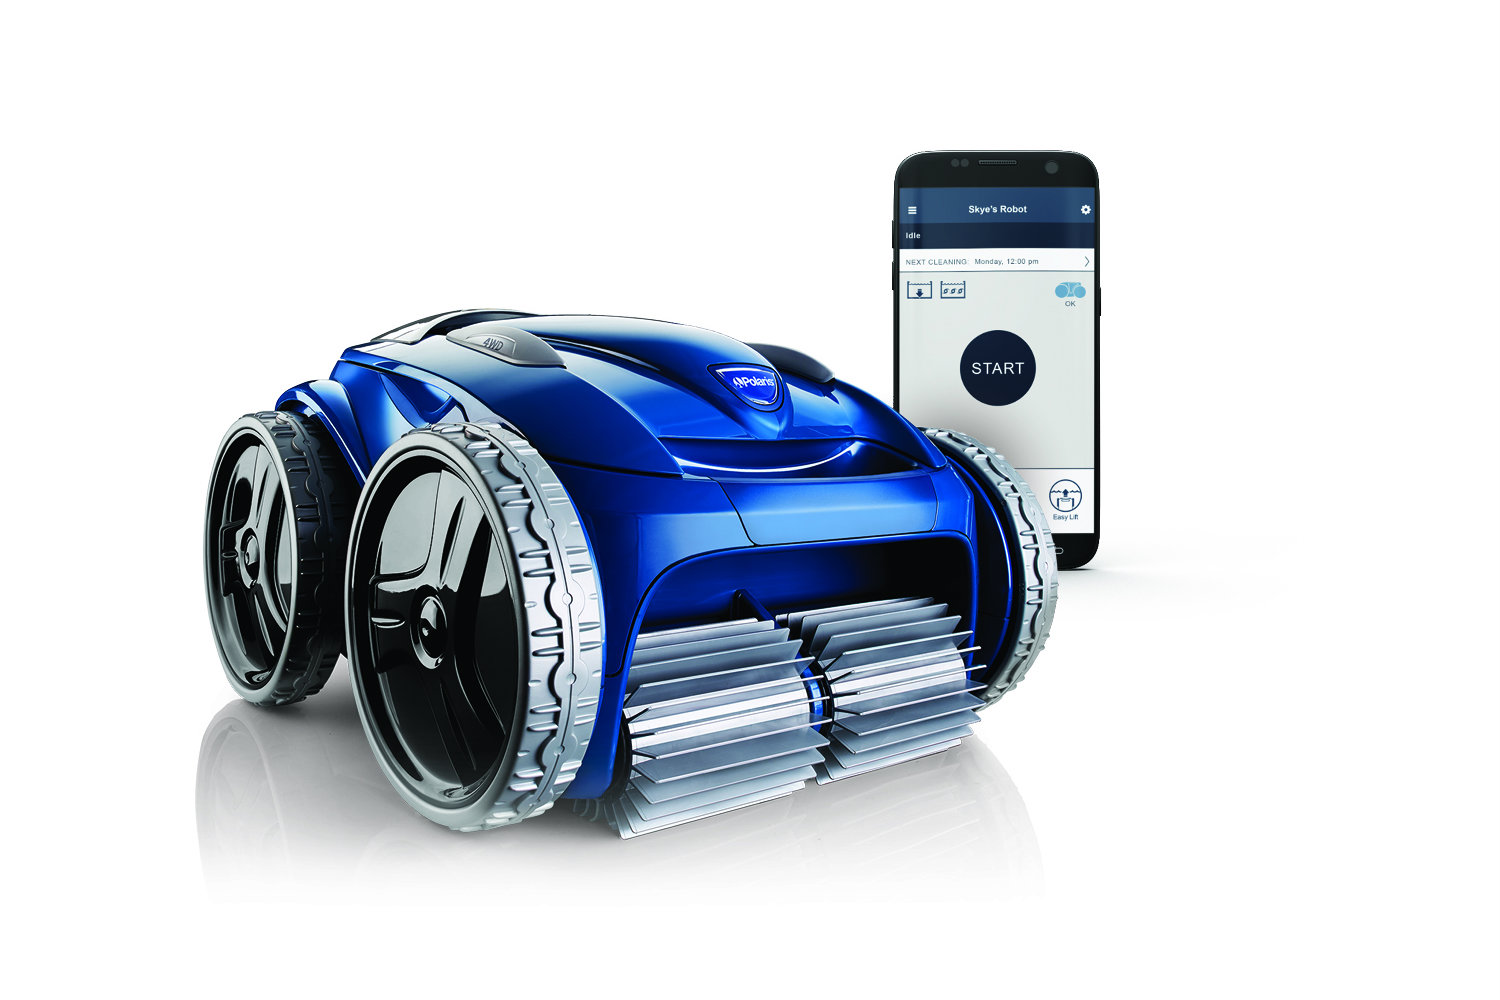 New Polaris Robotic Swimming Pool Cleaner Uses Four Wheel